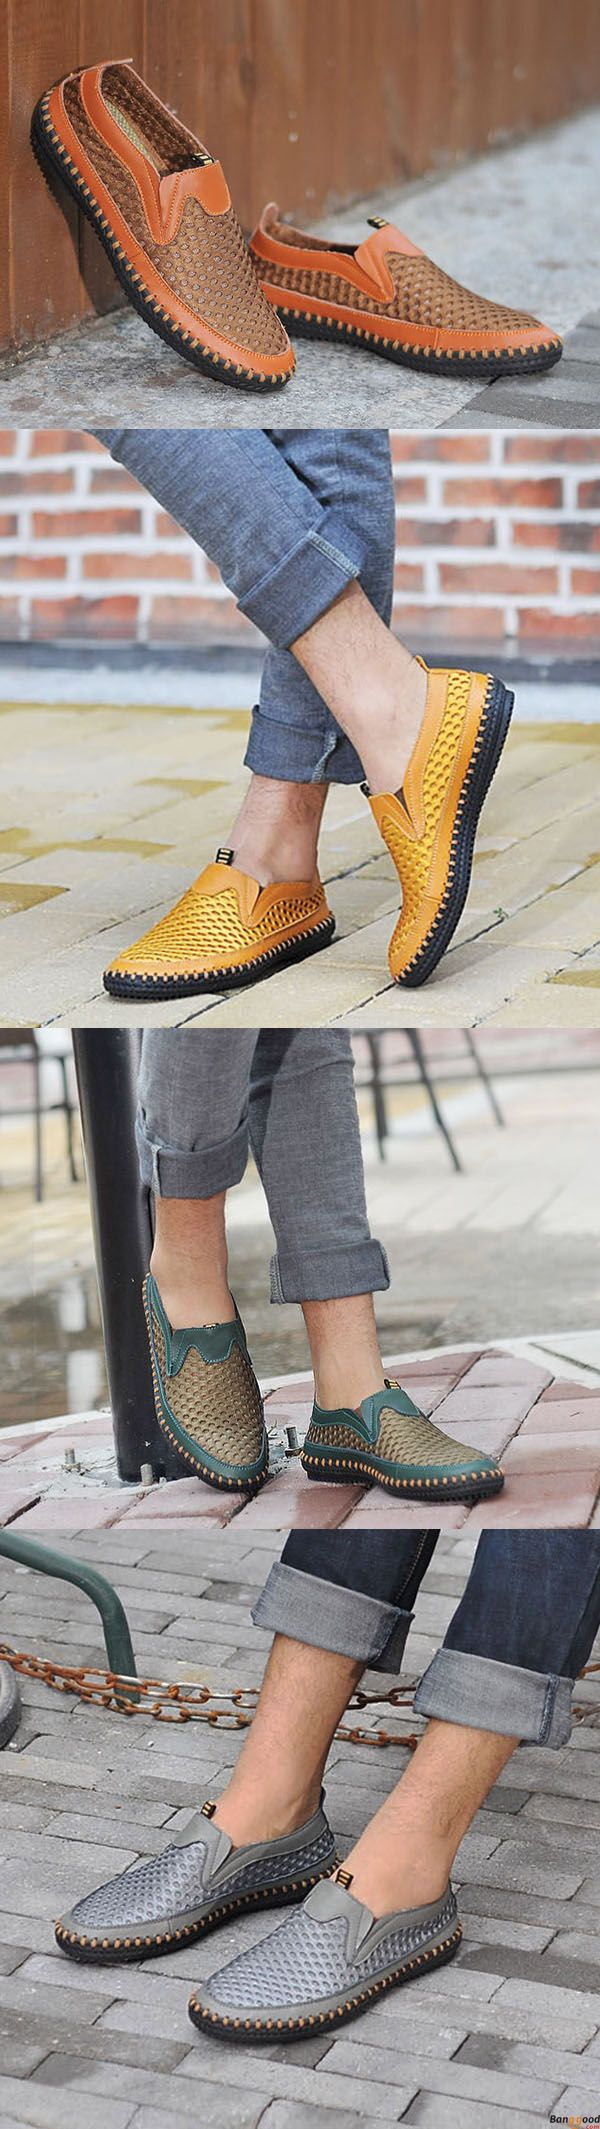 6e5140f795 US 33.43+ Free Shipping. 5 colors available. Men loafers